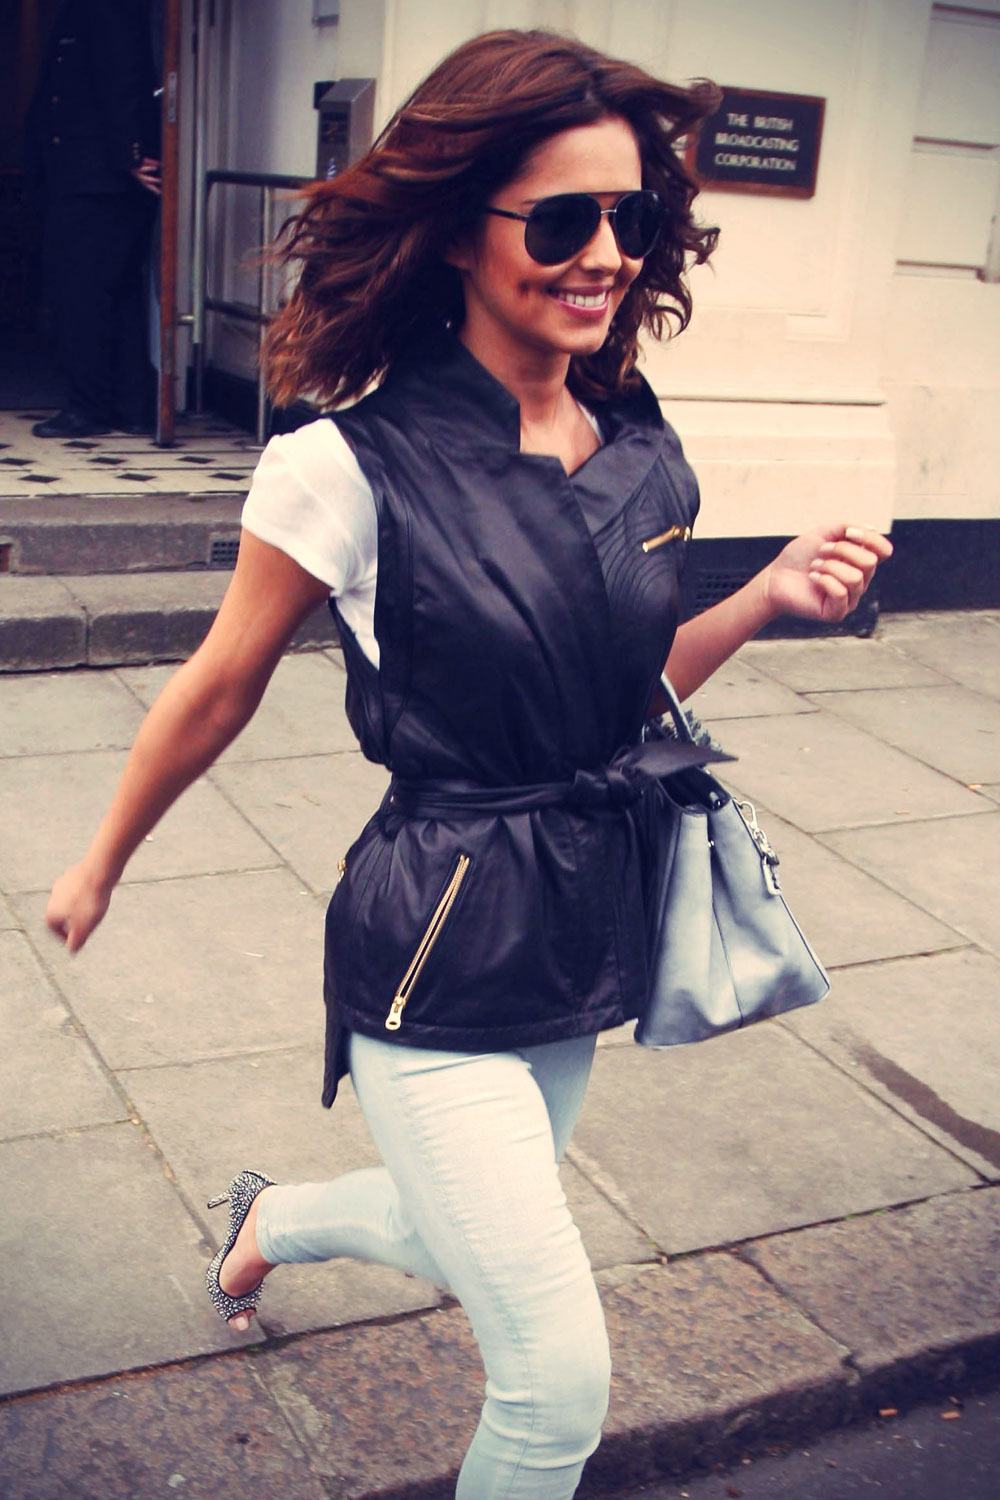 Cheryl Cole arrives at BBC Radio 1 Live Lounge